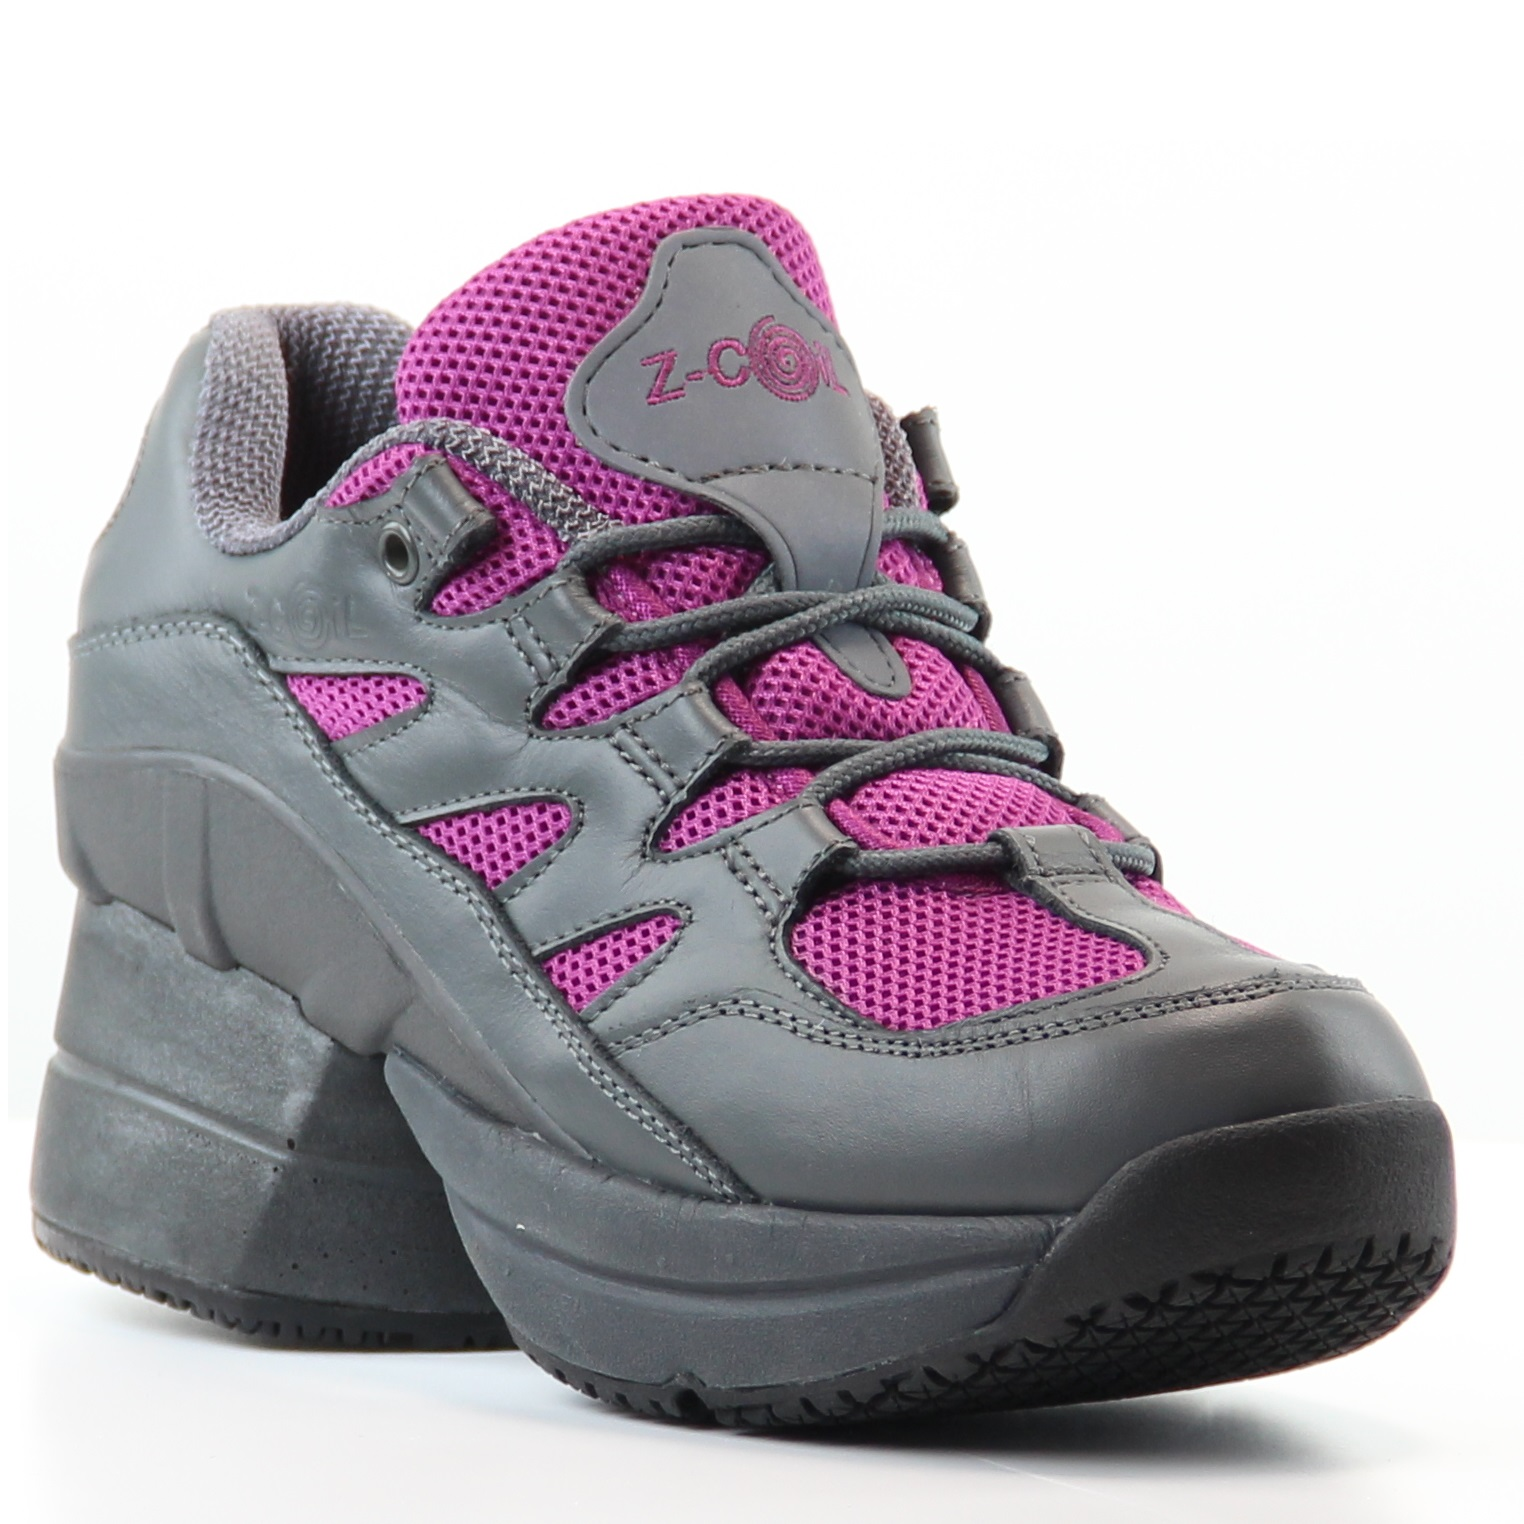 z-coil freedom s/r fw-k1008 gray and fuchsia with enclosed coils